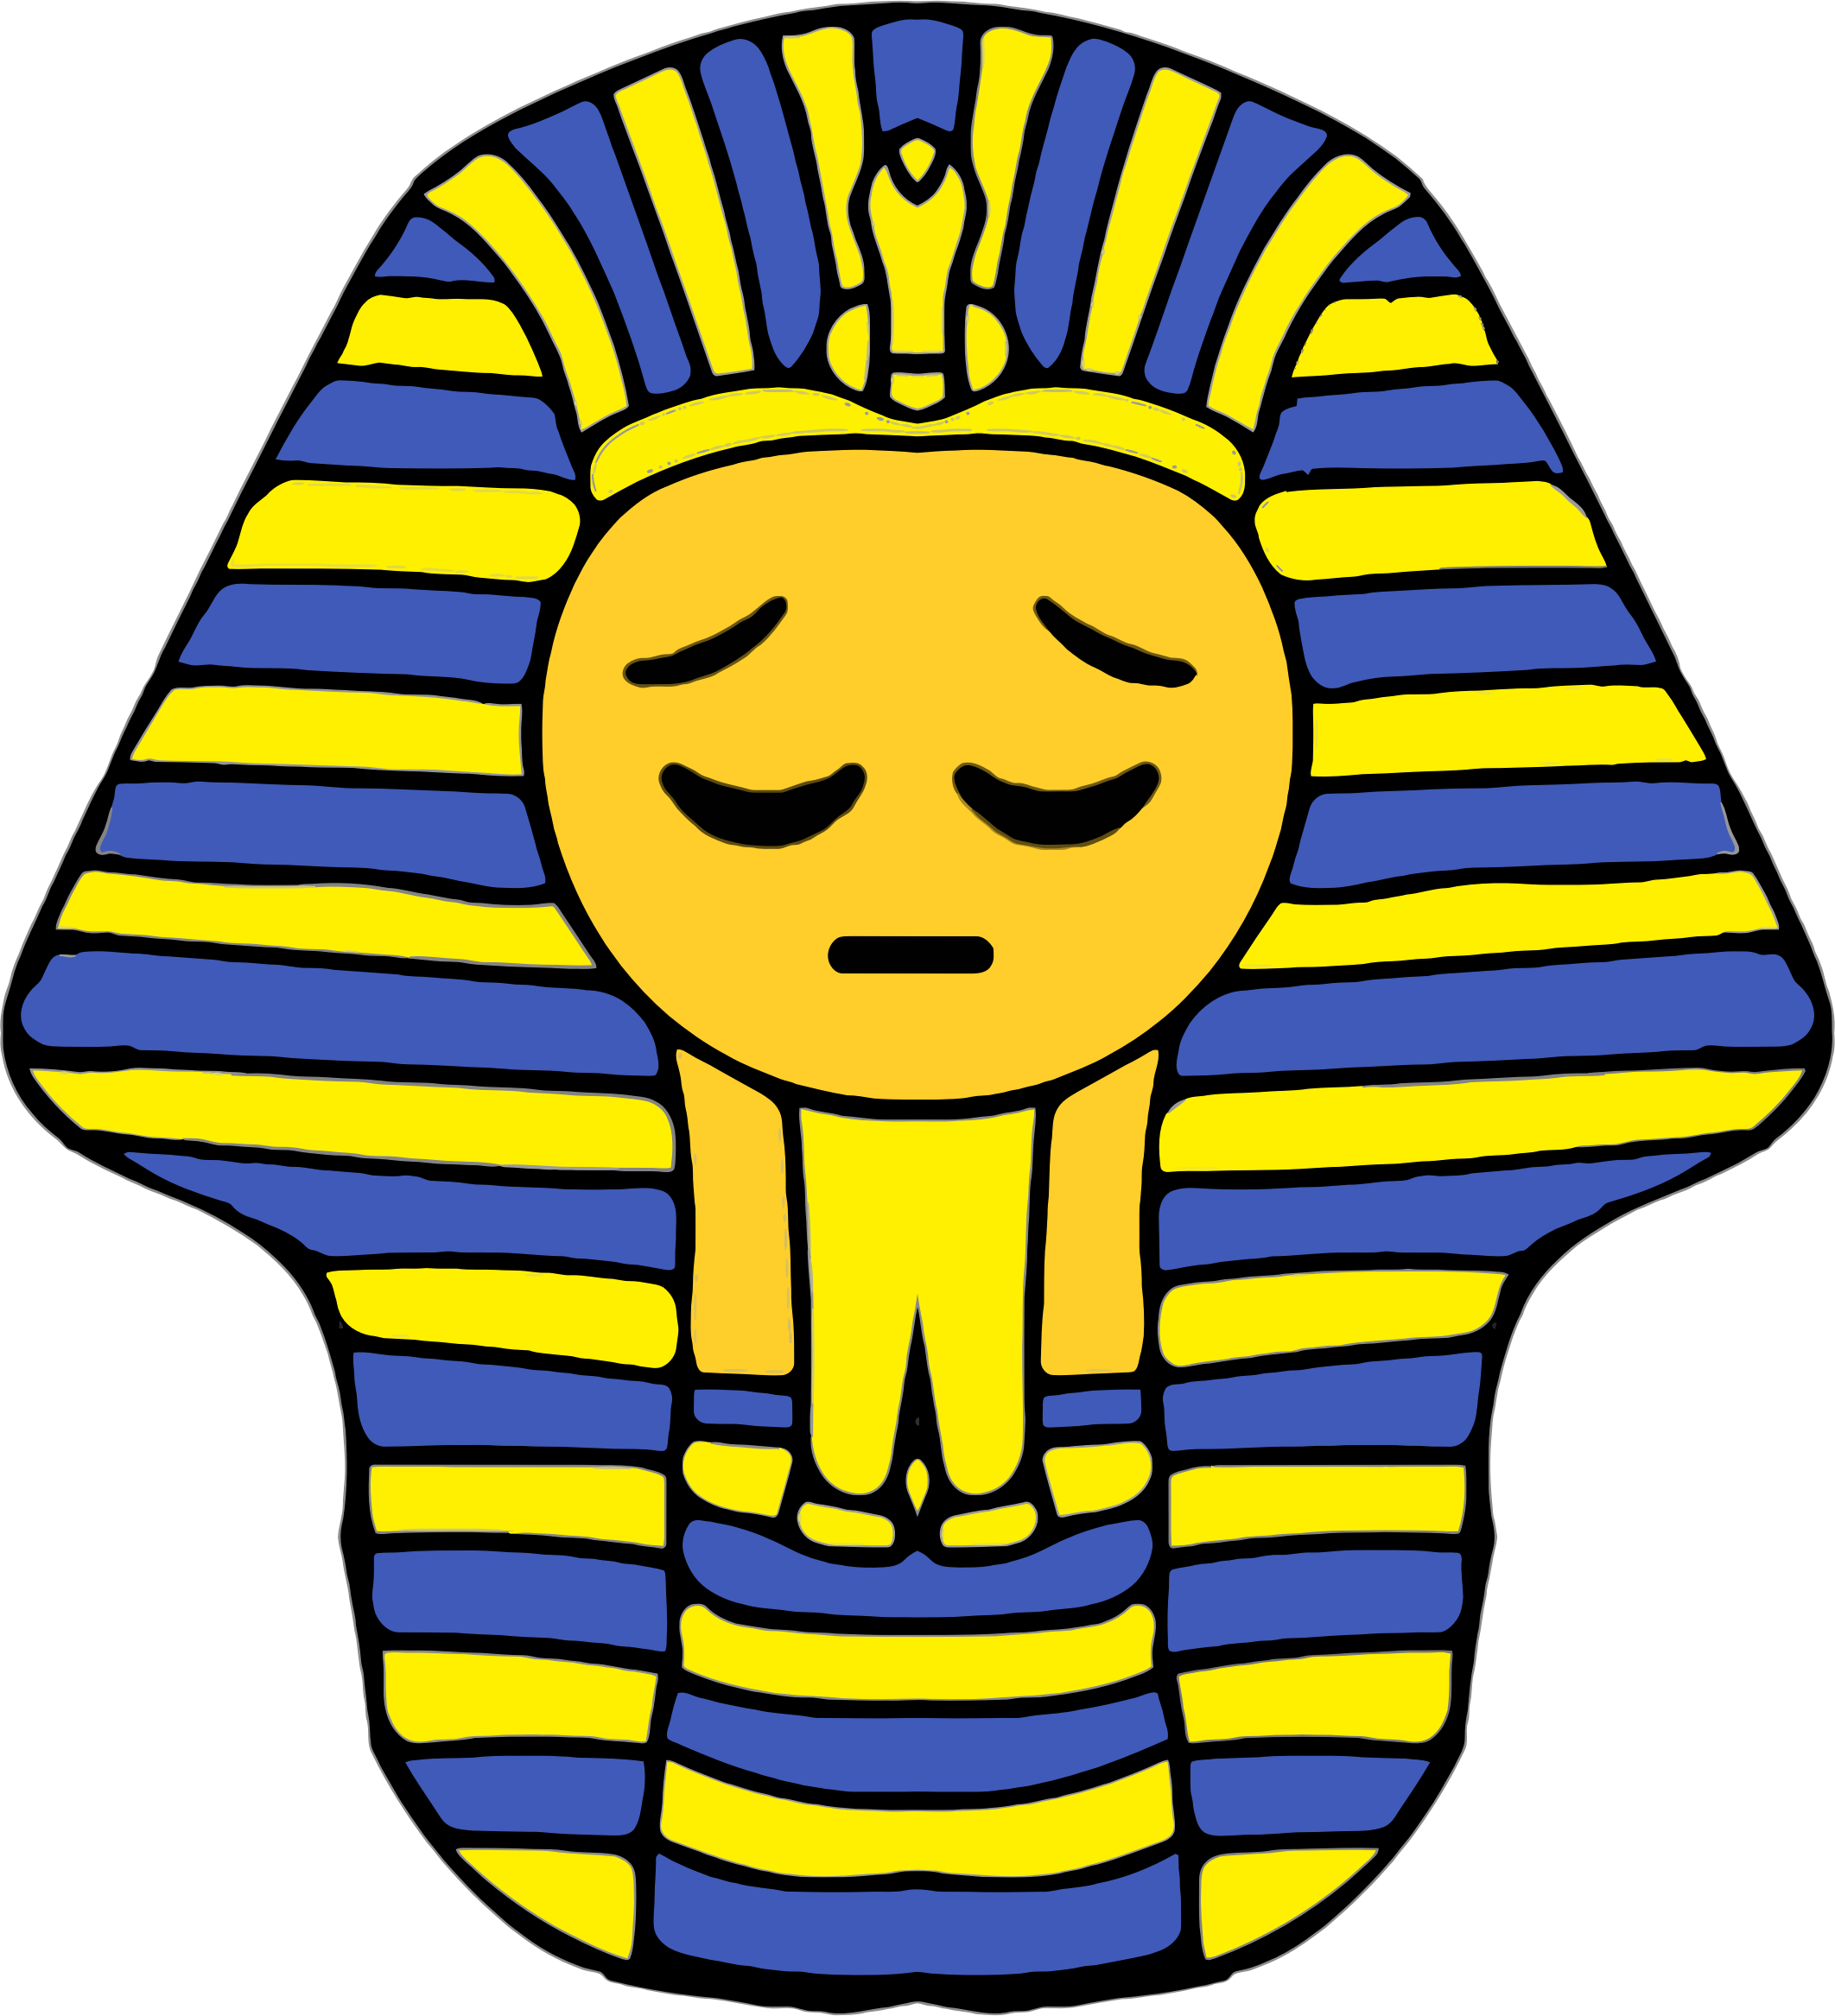 Pharaoh Smiley 3 by GDJ